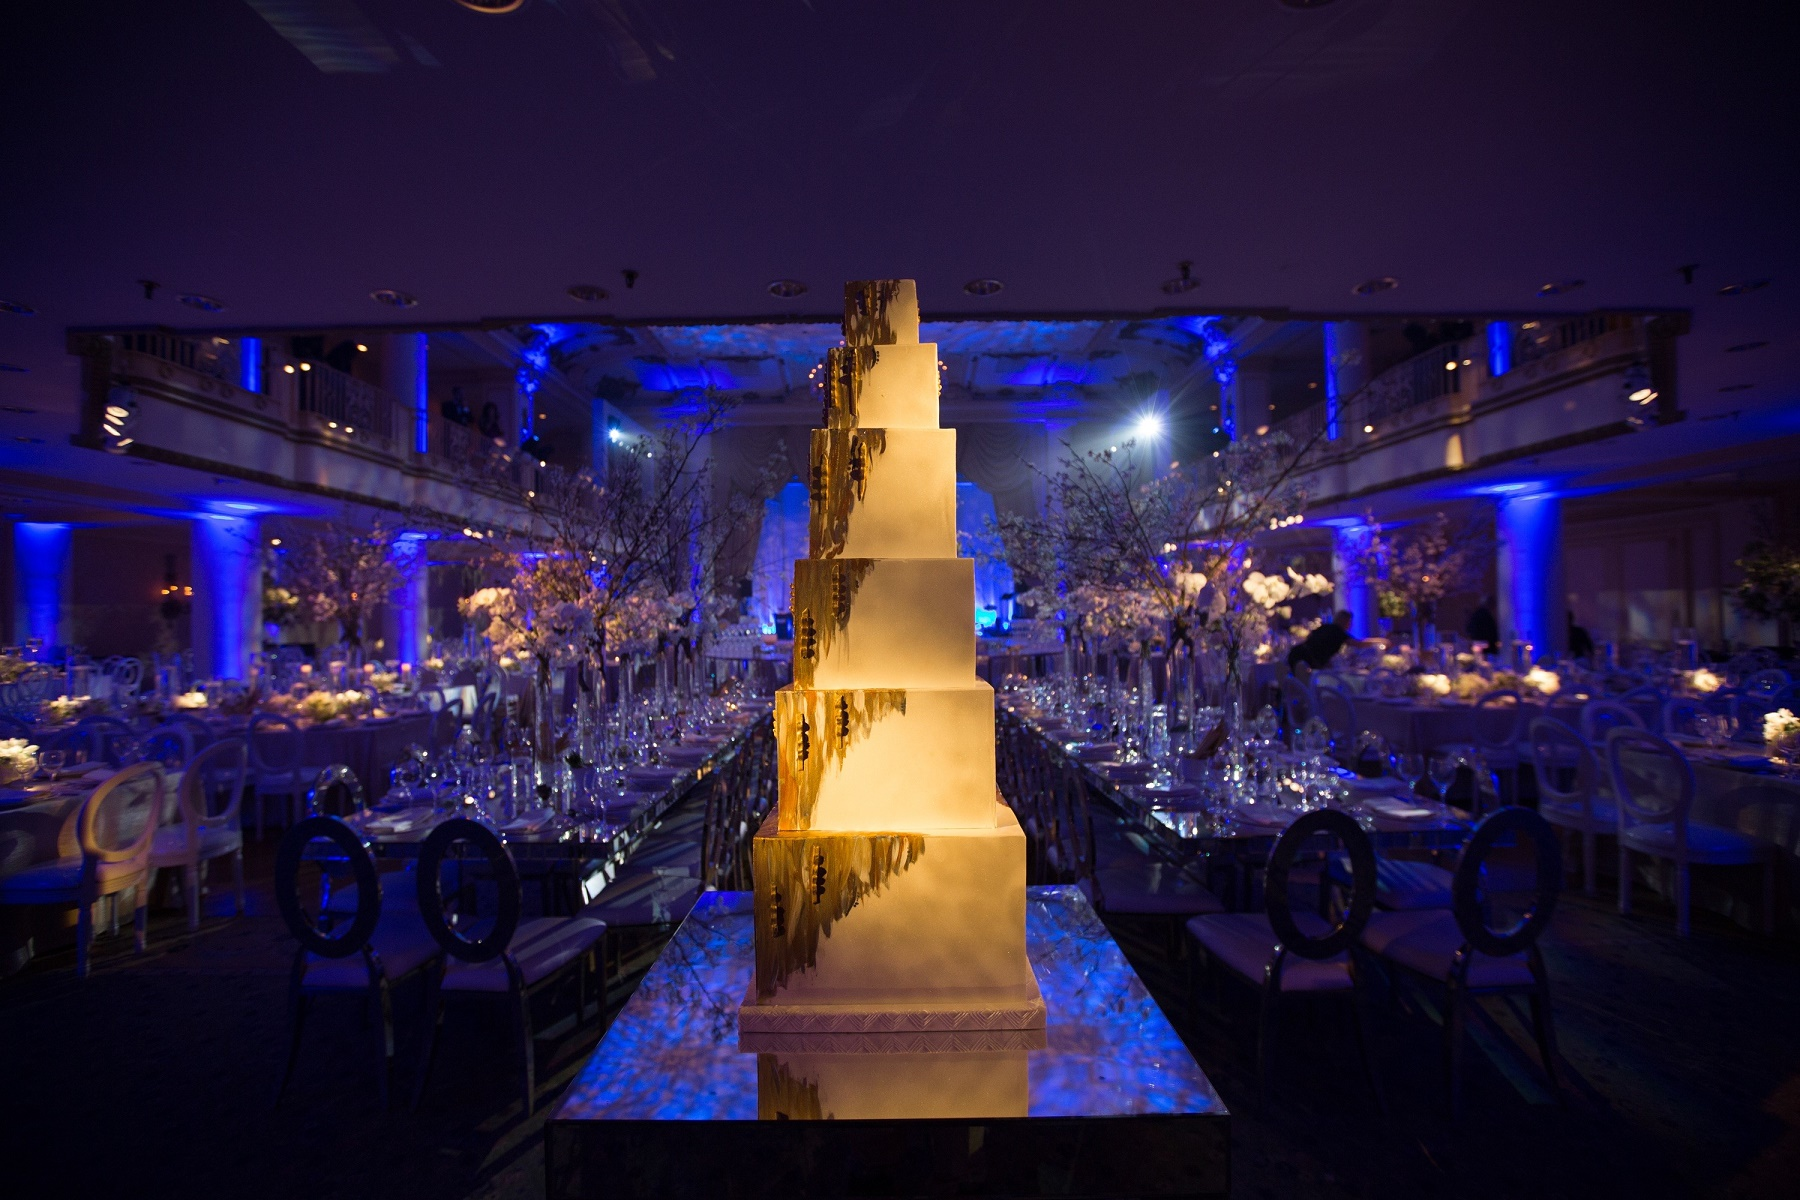 Big blue Bellevue Wedding Cake Evantine Design Cliff Mautner Photography 2